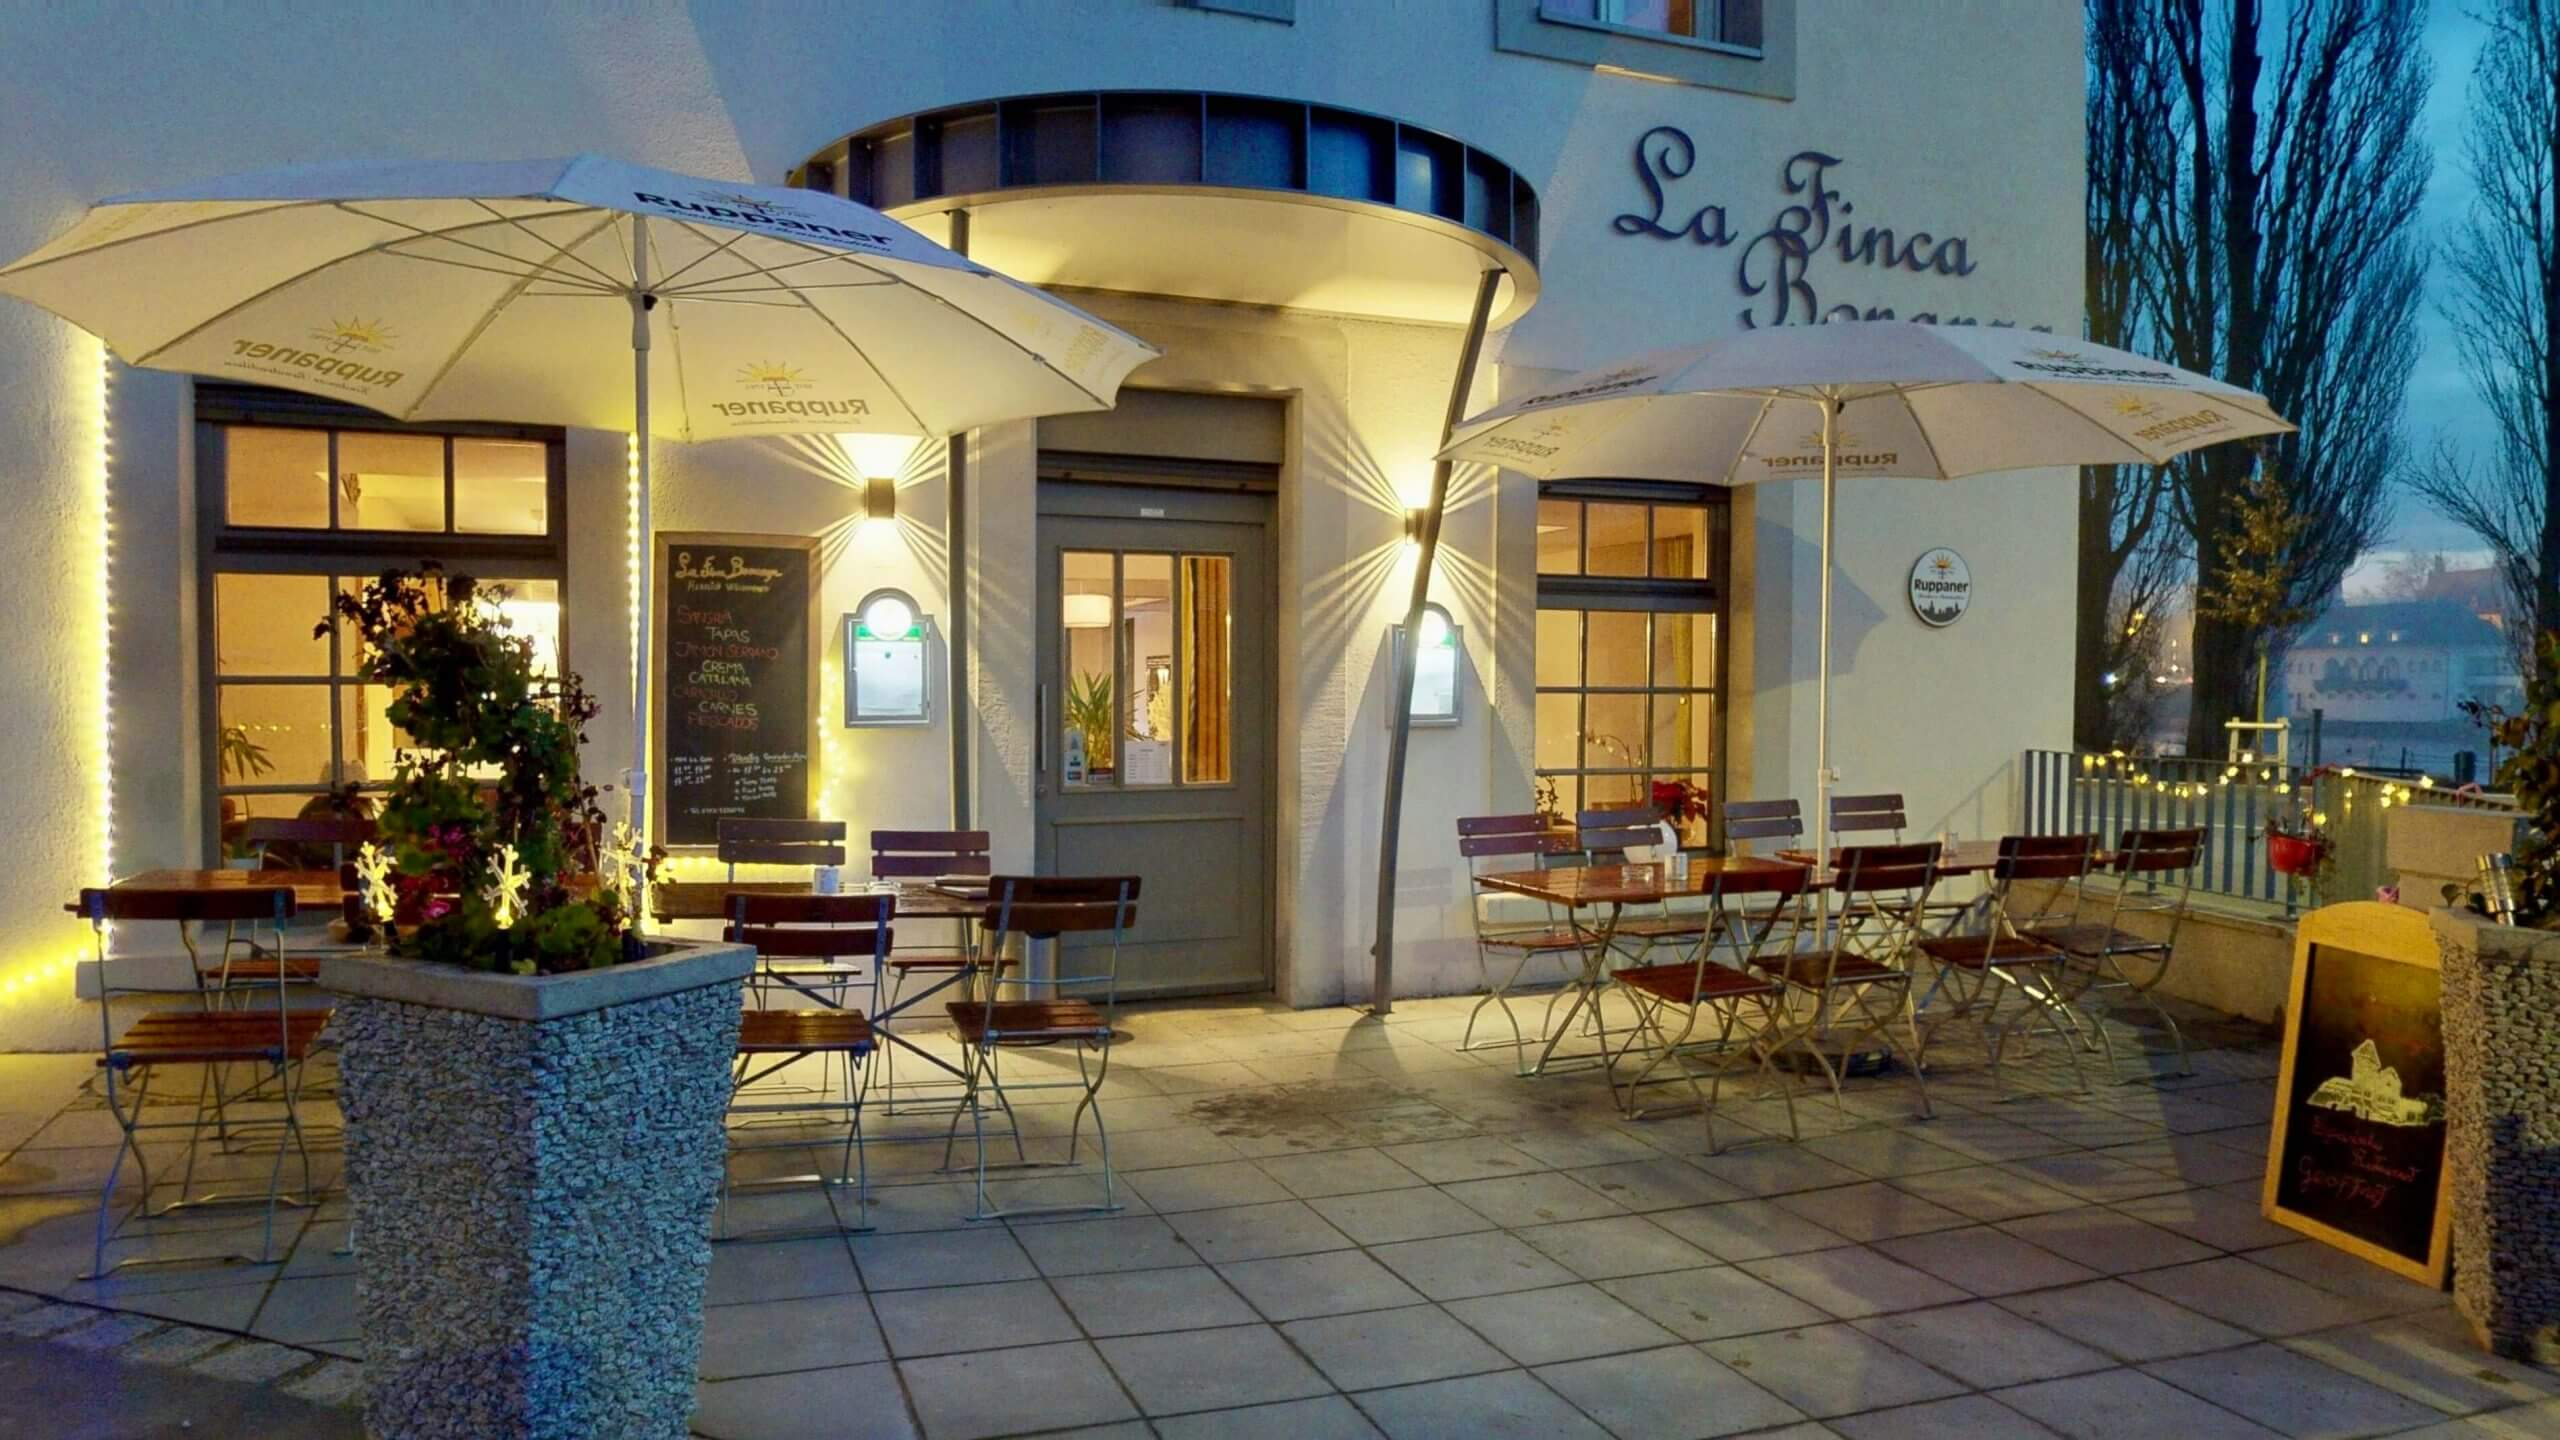 La Finca Bonanza Spanisches Restaurant in Konstanz 01052020 233547 1 scaled